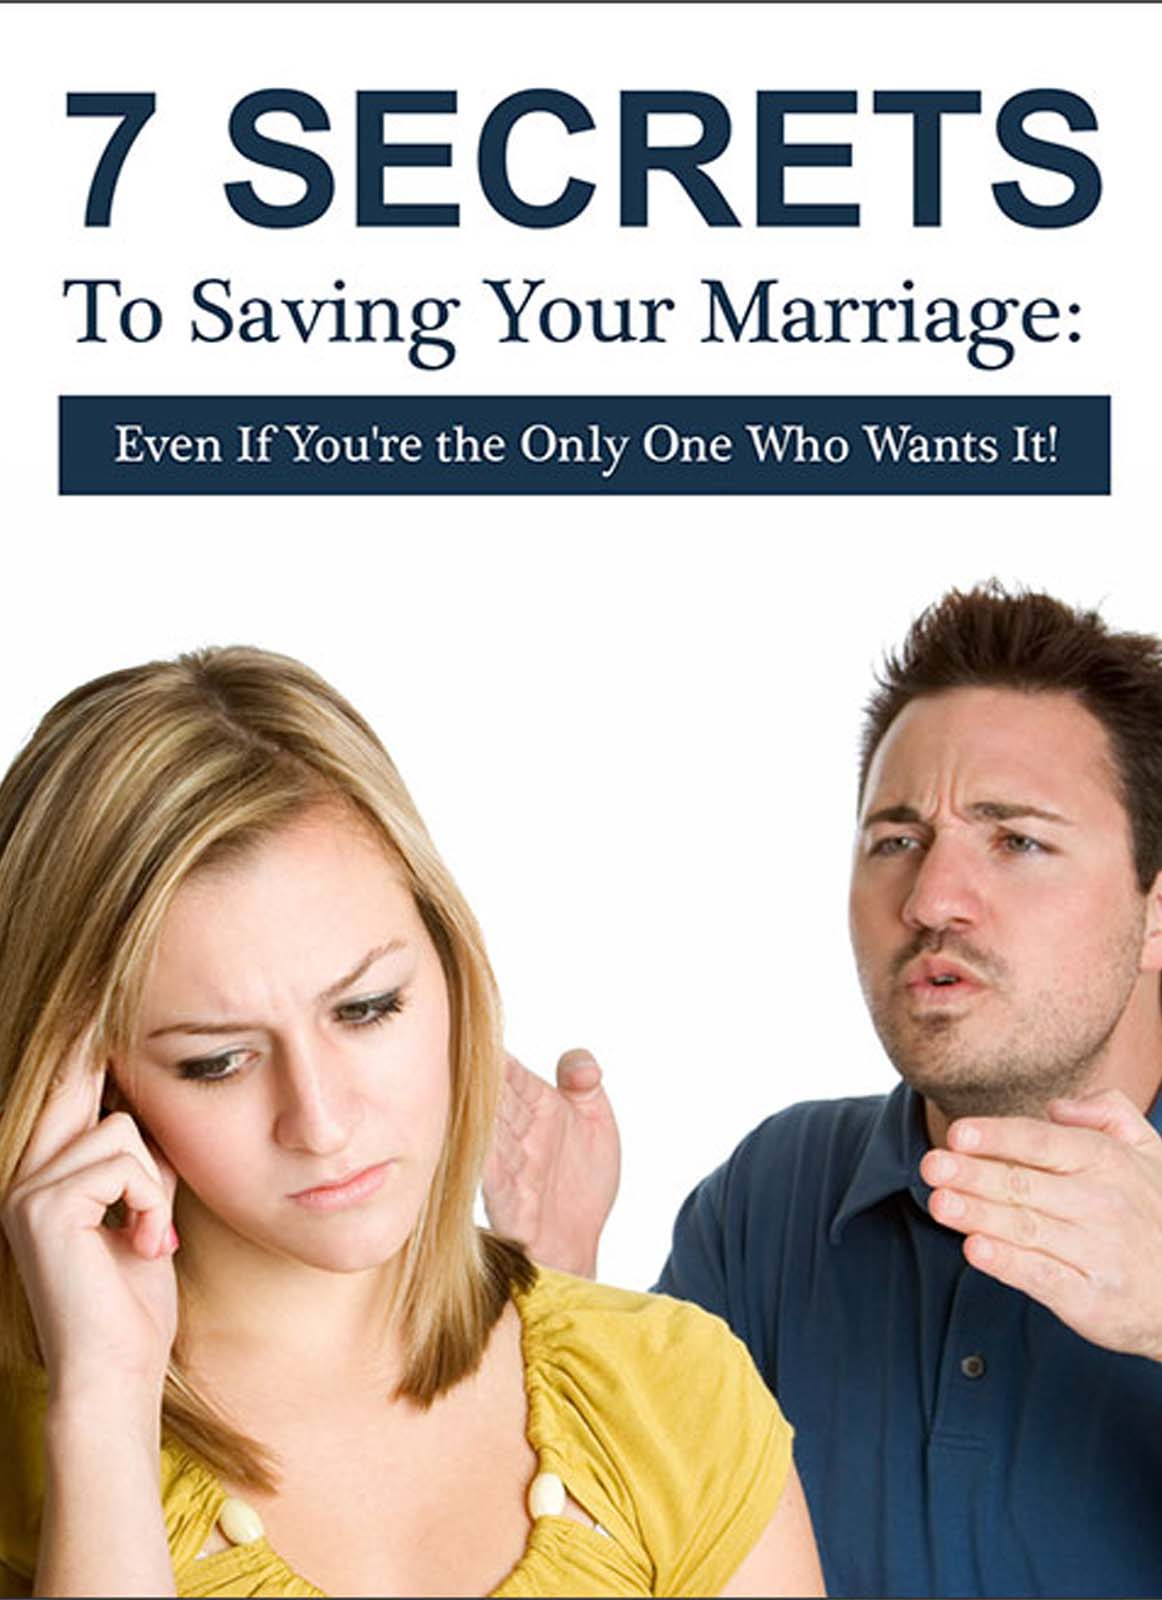 7secretstosavingyourmarriage-full